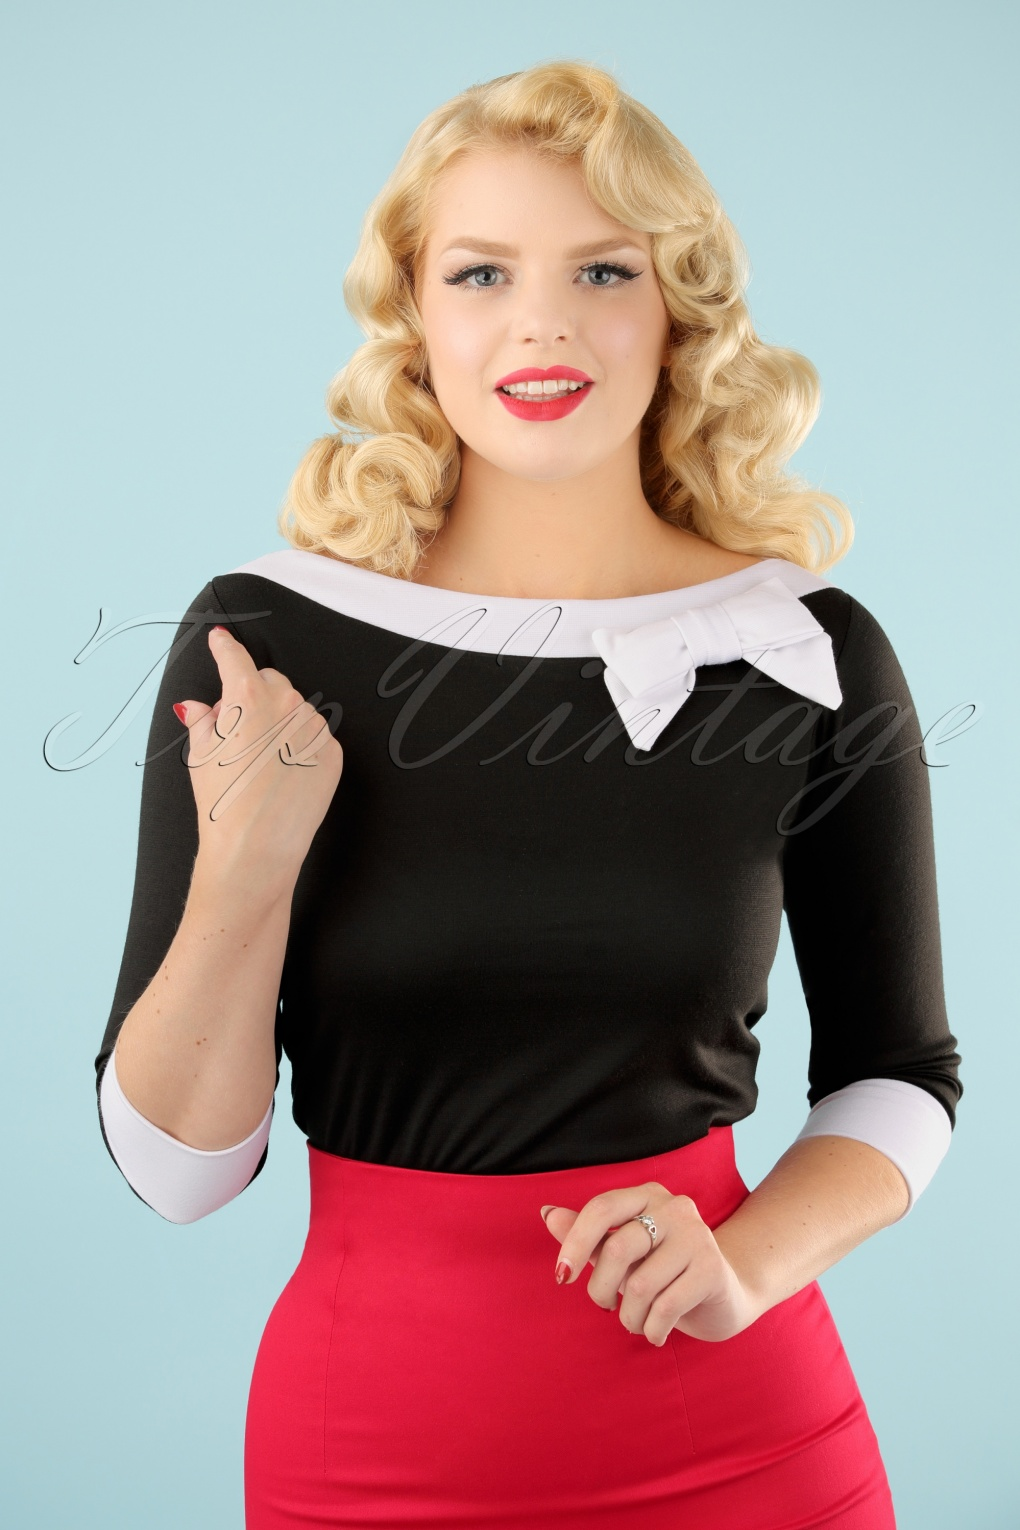 1950s Jackets and Coats | Swing, Pin Up, Rockabilly TopVintage Exclusive  50s Bianca Bow Boatneck Top in Black £42.62 AT vintagedancer.com